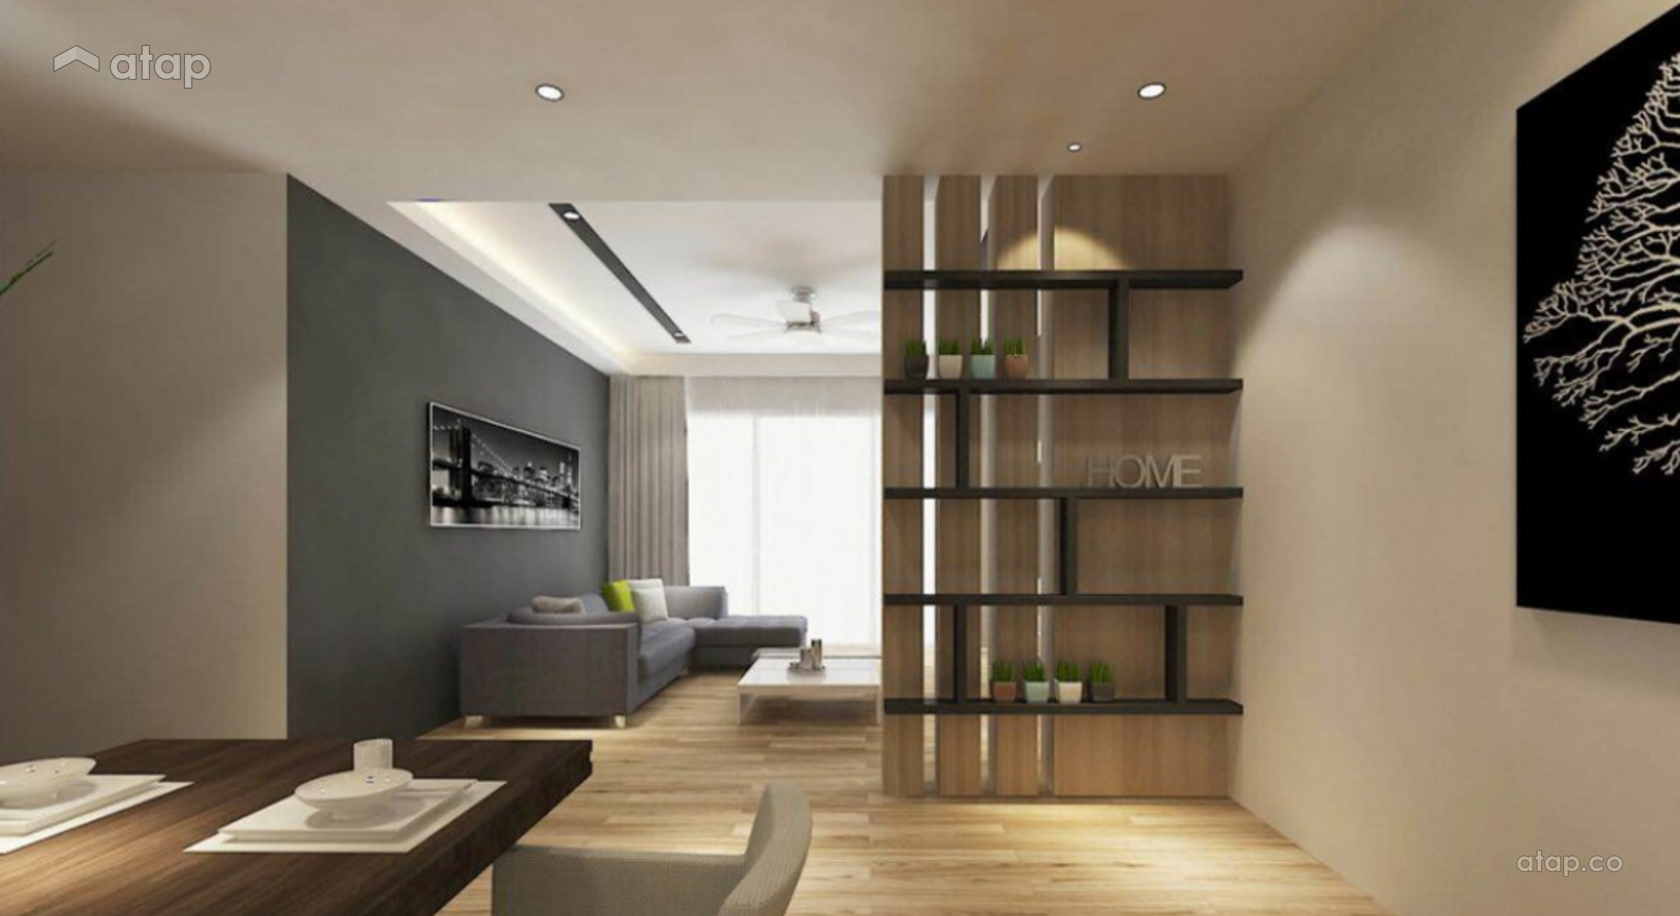 Elite Height Penang Interior Design Renovation Ideas Photos And Price In Malaysia